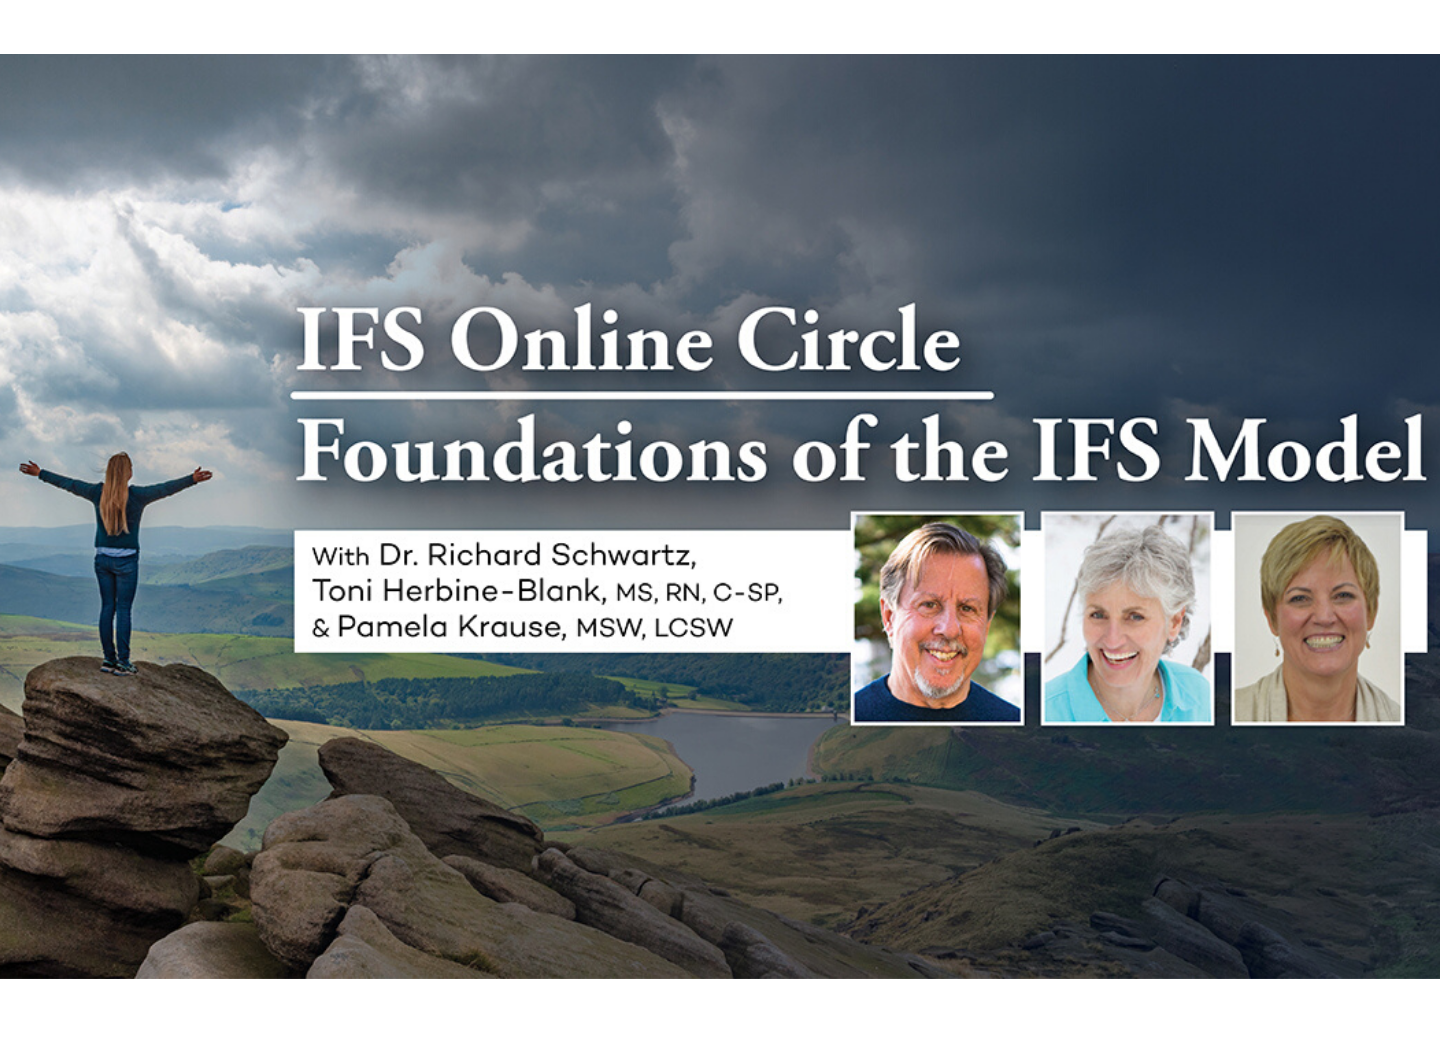 IFS Online Circle - Foundations of the IFS Model